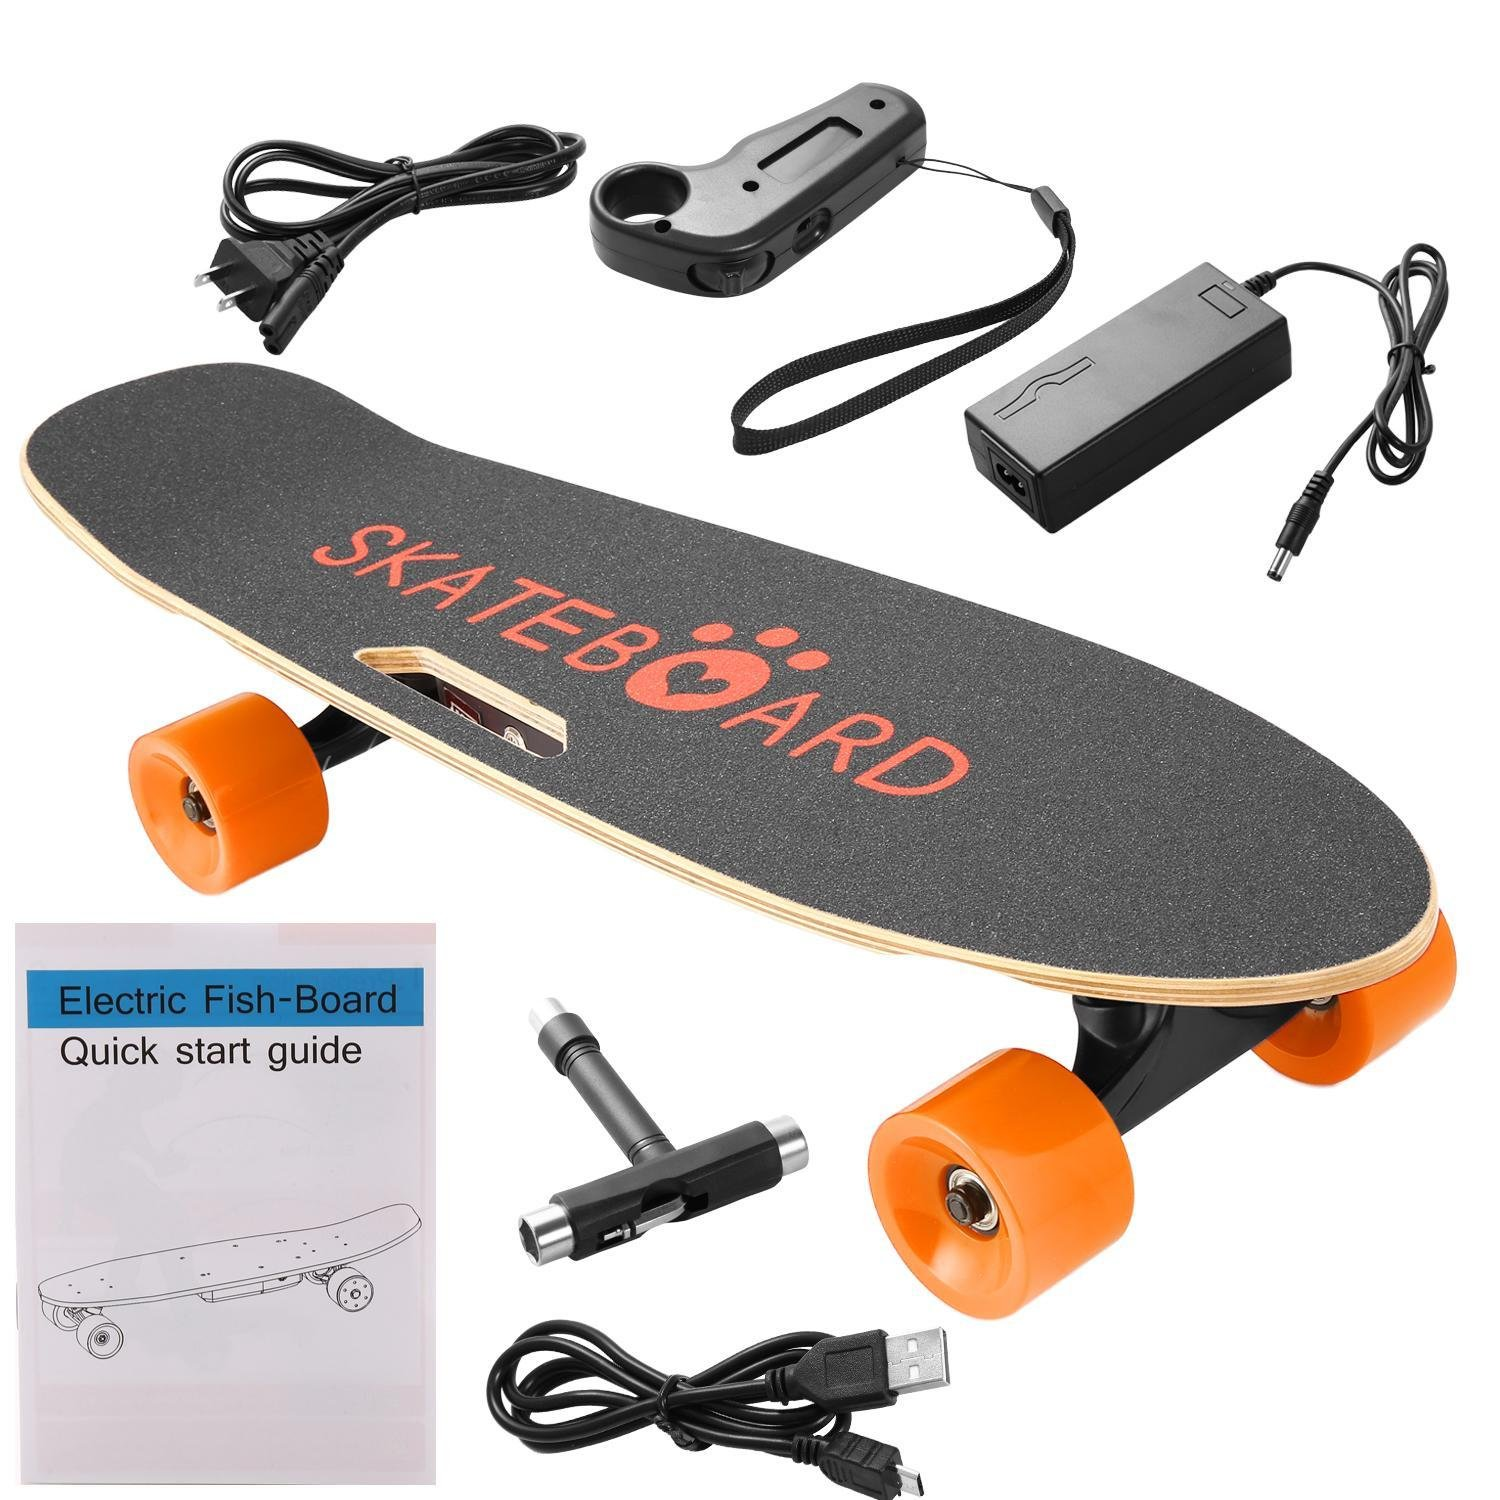 Kaluo 28in Electric Complete Skateboard with Bluetooth Speaker, Lithium Battery Wireless Remote Controlled Skateboard, Orange Black Red Green Wheels (US STOCK) (Orange Wheel)